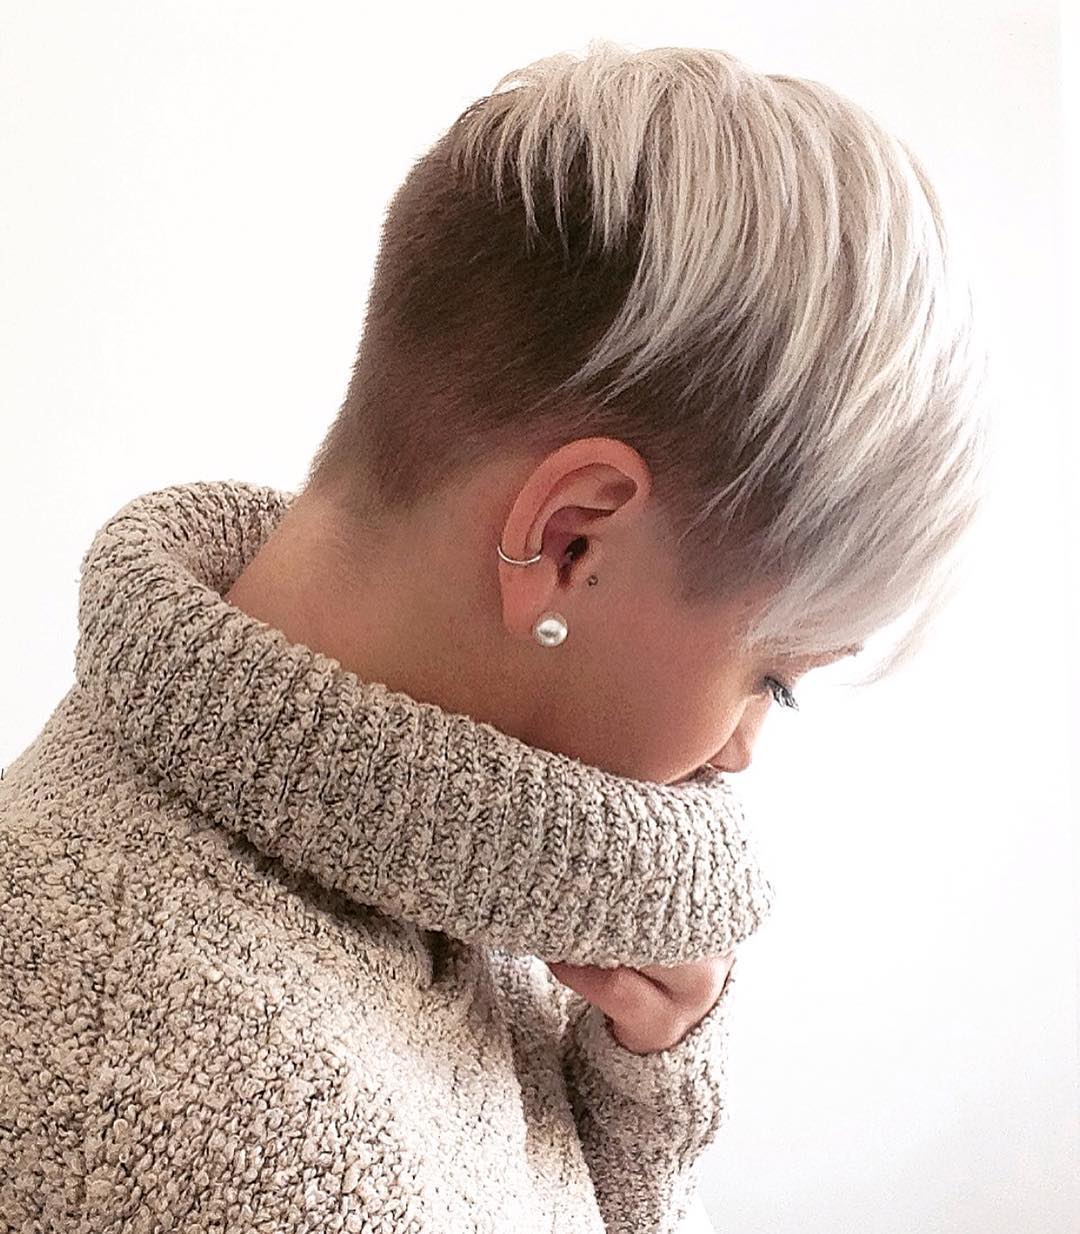 10 Stylish Pixie Haircuts In Ultra Modern Shapes Women